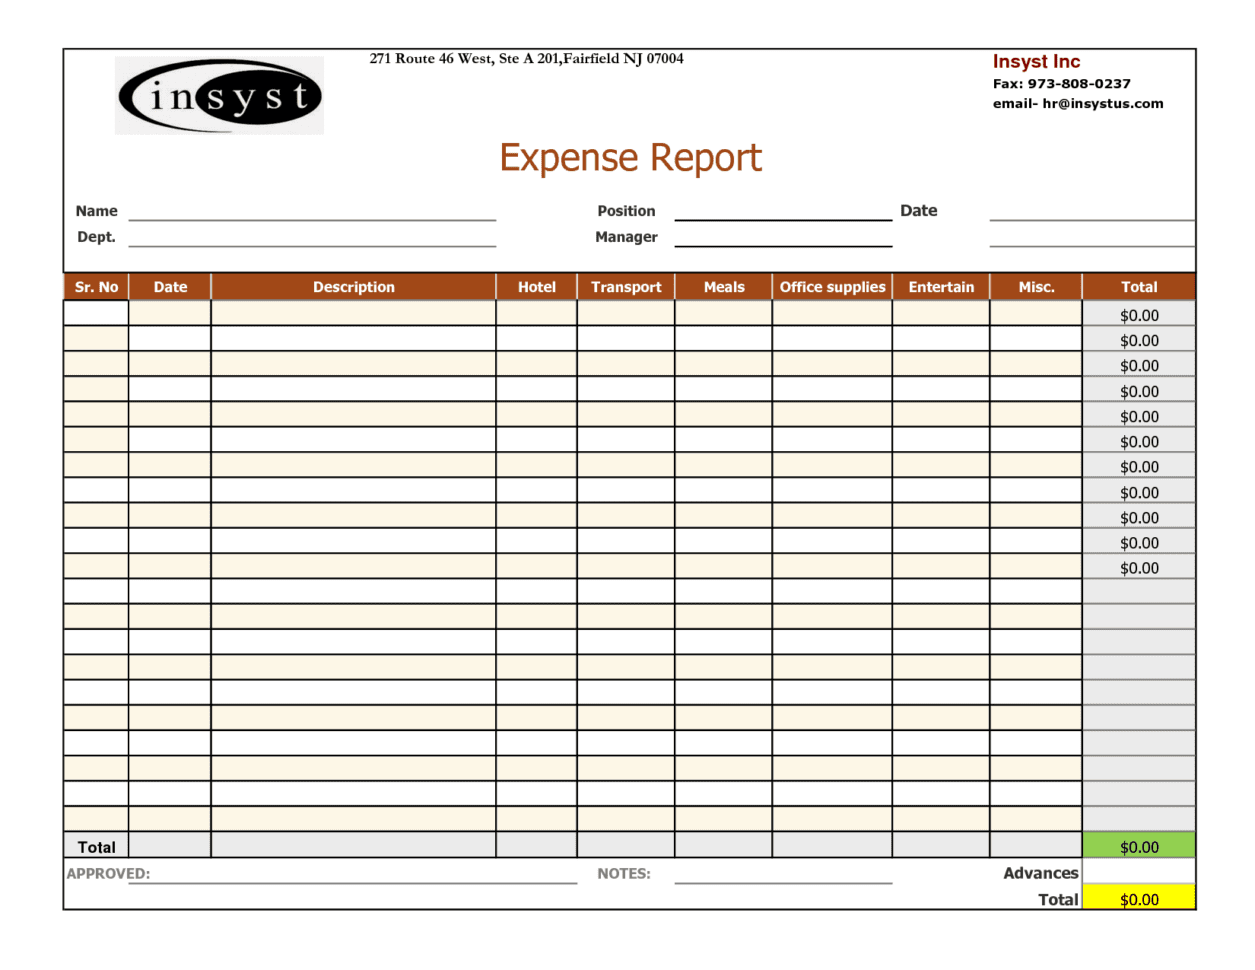 Excel Family Budget Template Uk Business Expenses Spreadsheet Template Uk Business Expenses Template Excel Simple Expenses Claim Form Template Expense Claim Form Template Microsoft Office Expense Form Template For Small Business Excel Budget Template Uk  Expenses Template Excel Free Excel Expenses Template UK Spreadsheet Templates for Busines